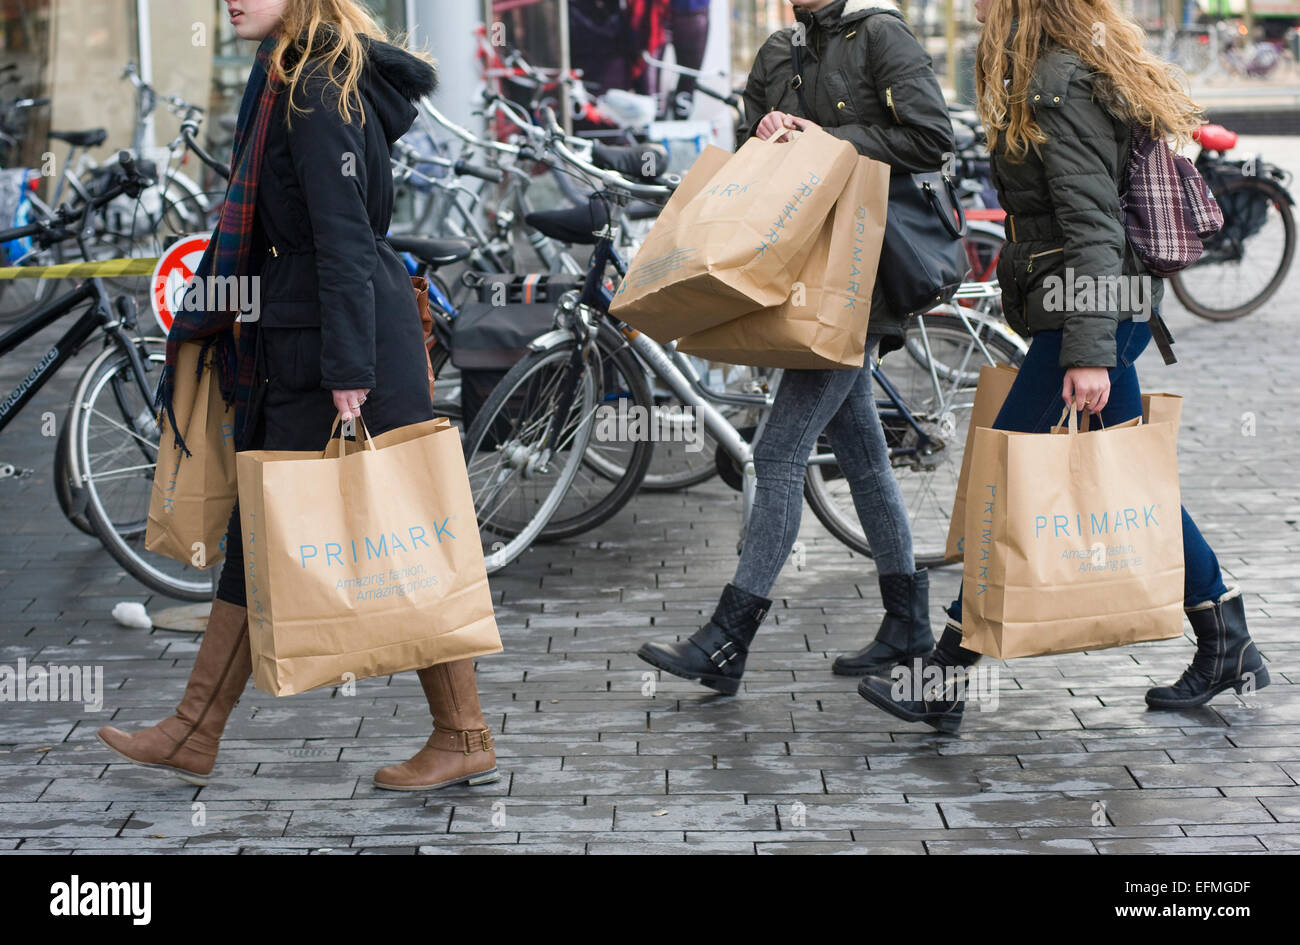 ENSCHEDE, THE NETHERLANDS - 05 FEB, 2015: Three women with shopping bags from Primark warehouse are walking on the - Stock Image